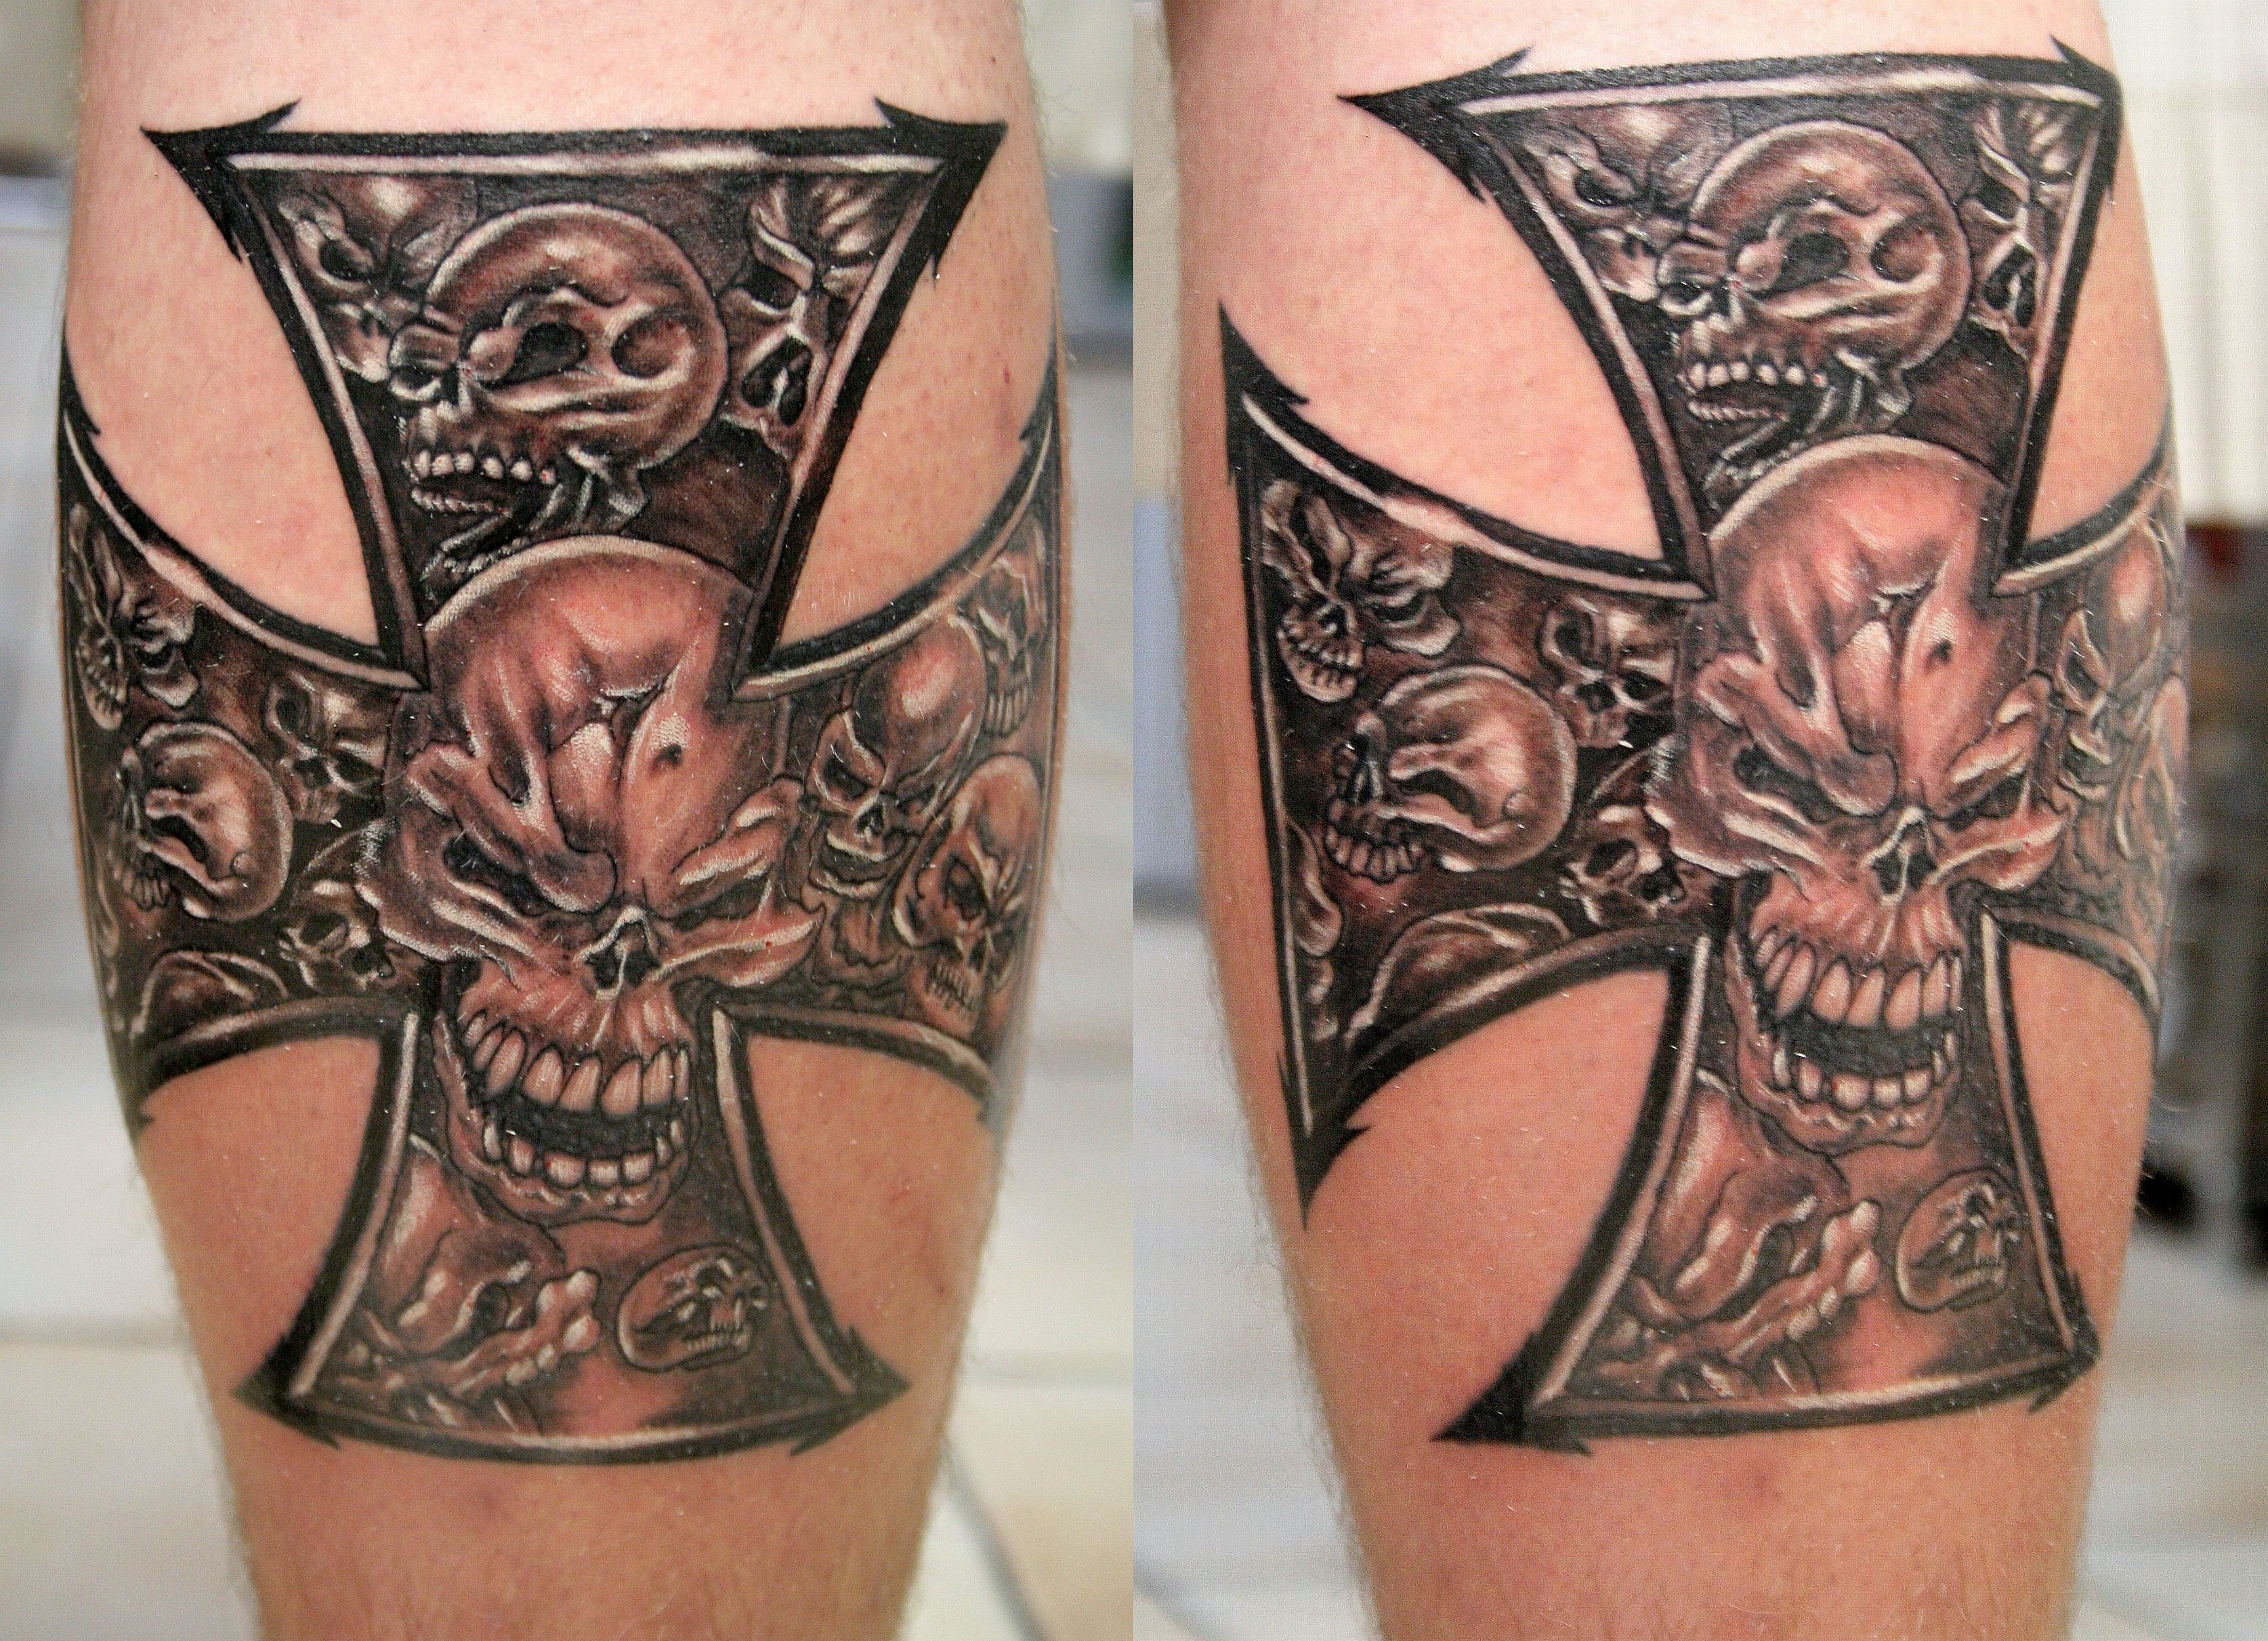 German cross tattoos for men wallpapers httpwallpaperzoo tattoo german cross publicscrutiny Image collections